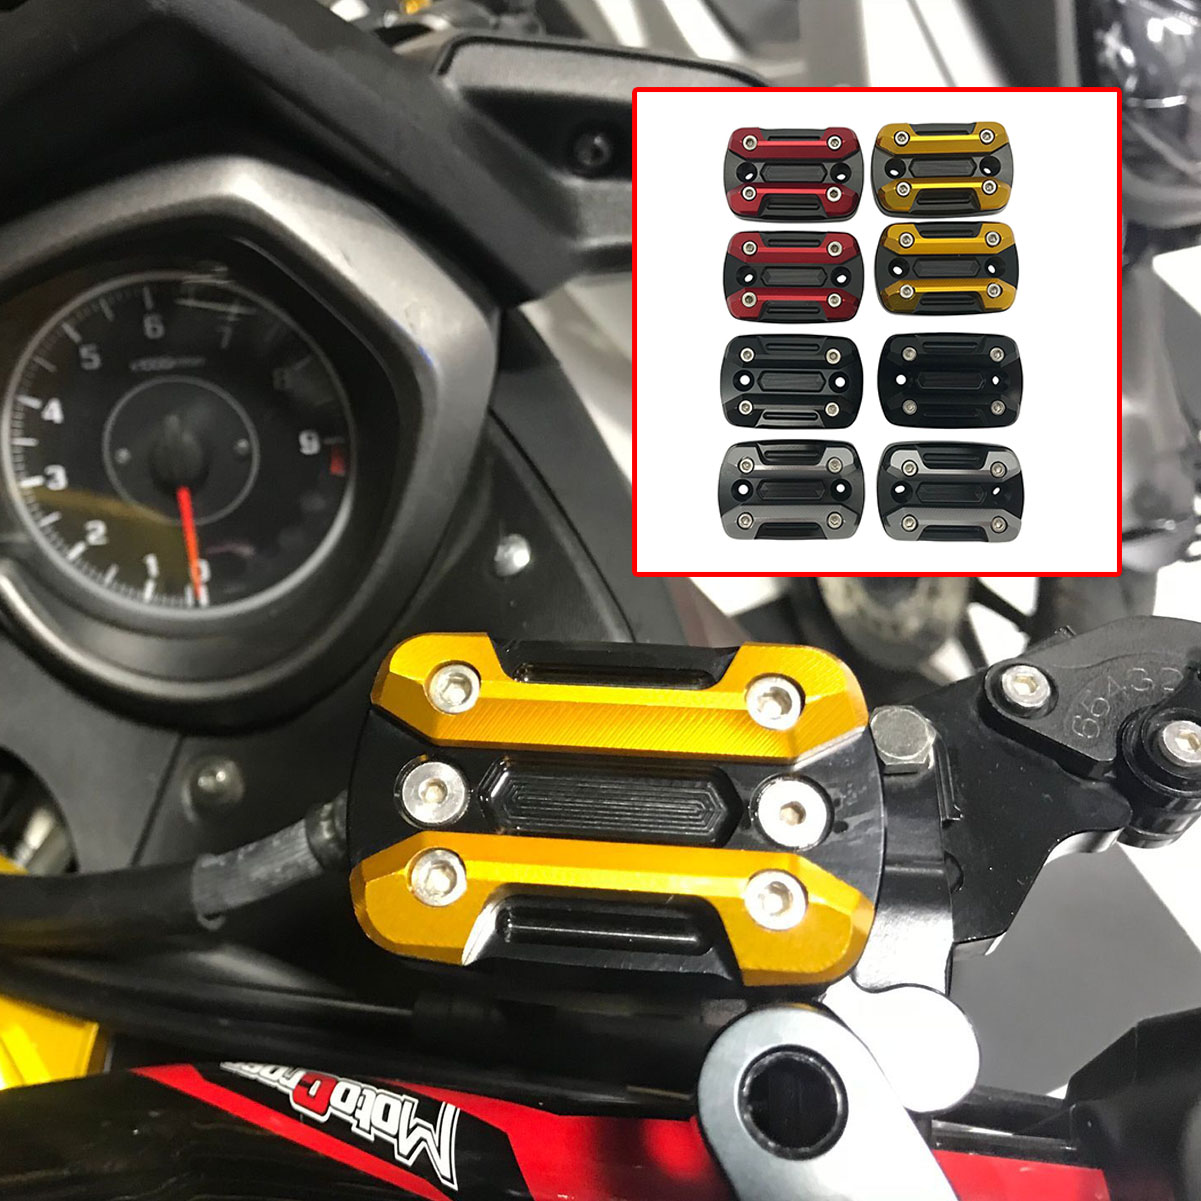 CNC XMAX 300 Brake Clutch Oil Fluid Reservoir Oil Cap Cover Tank For Yamaha XMAX250 300 400 125 2017-2019 Motorcycle Accessories